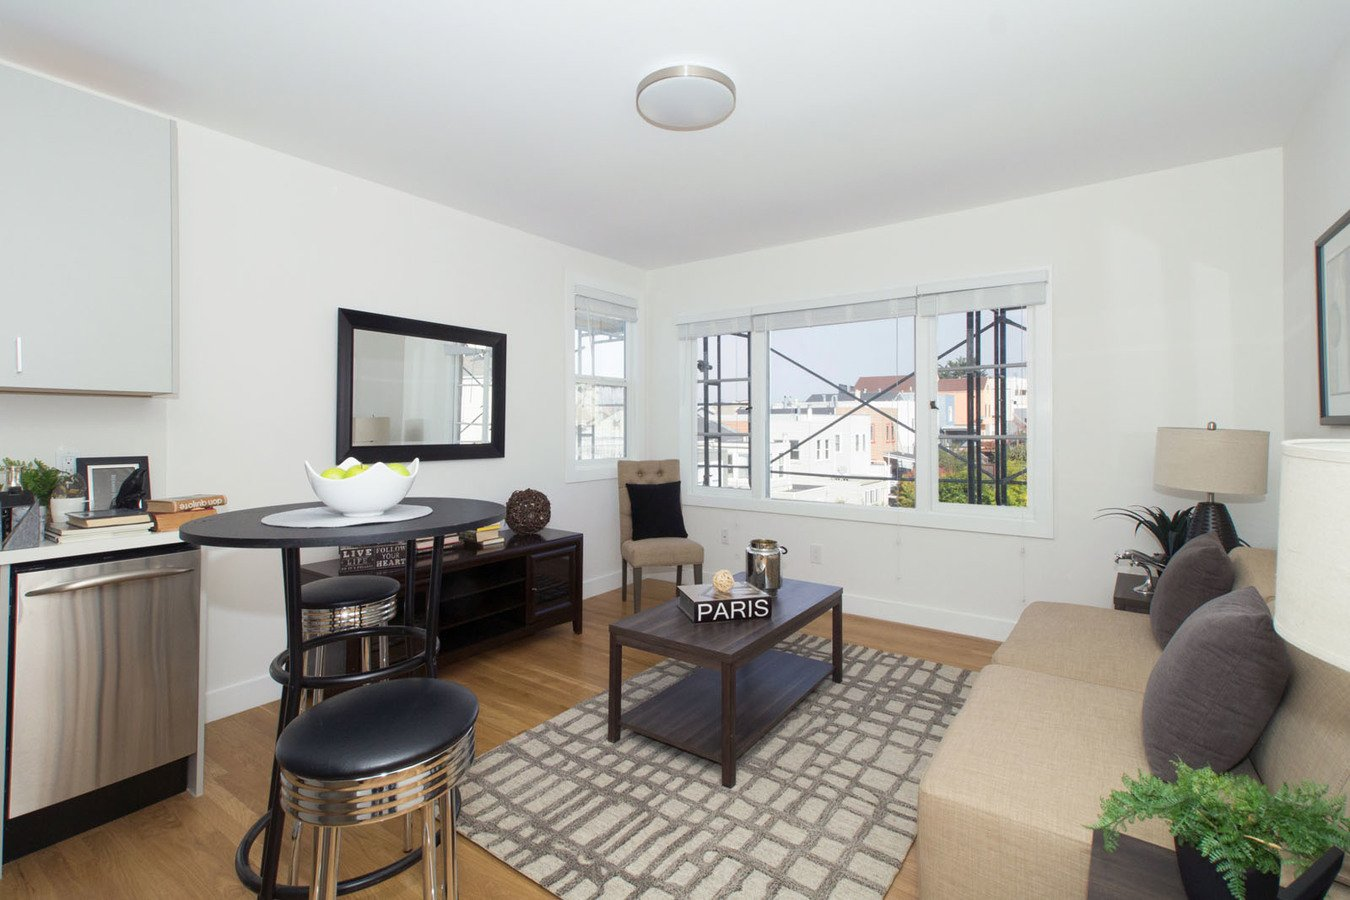 2 Bedrooms 1 Bathroom Apartment for rent at 2828 Geary Apartments in San Francisco, CA